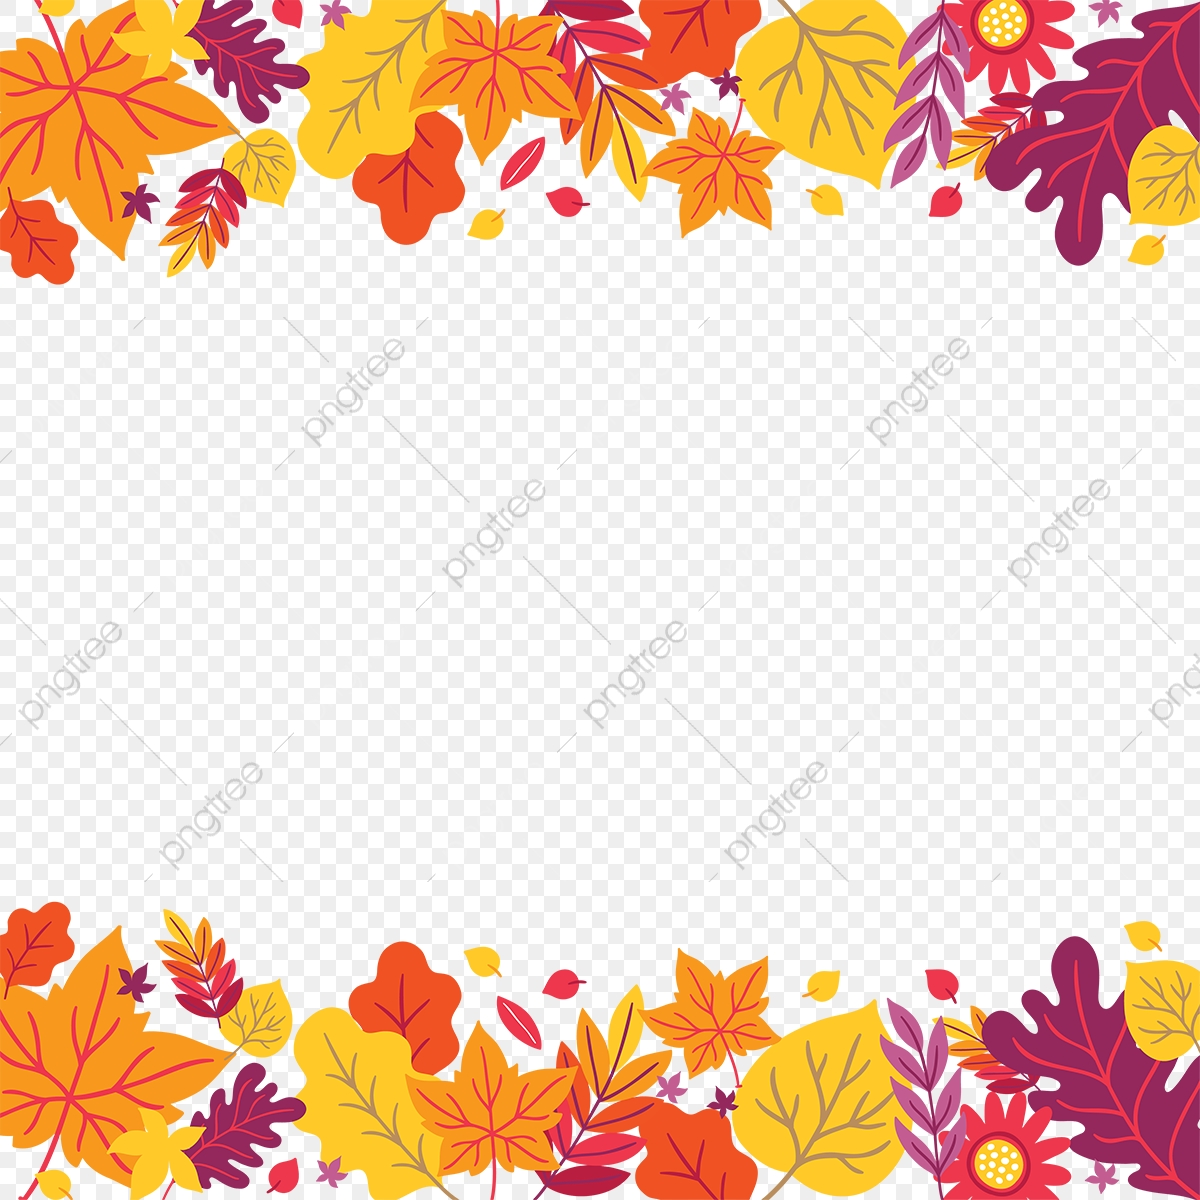 autumn flowers png autumn flowers transparent vector frame, autumn, flowers